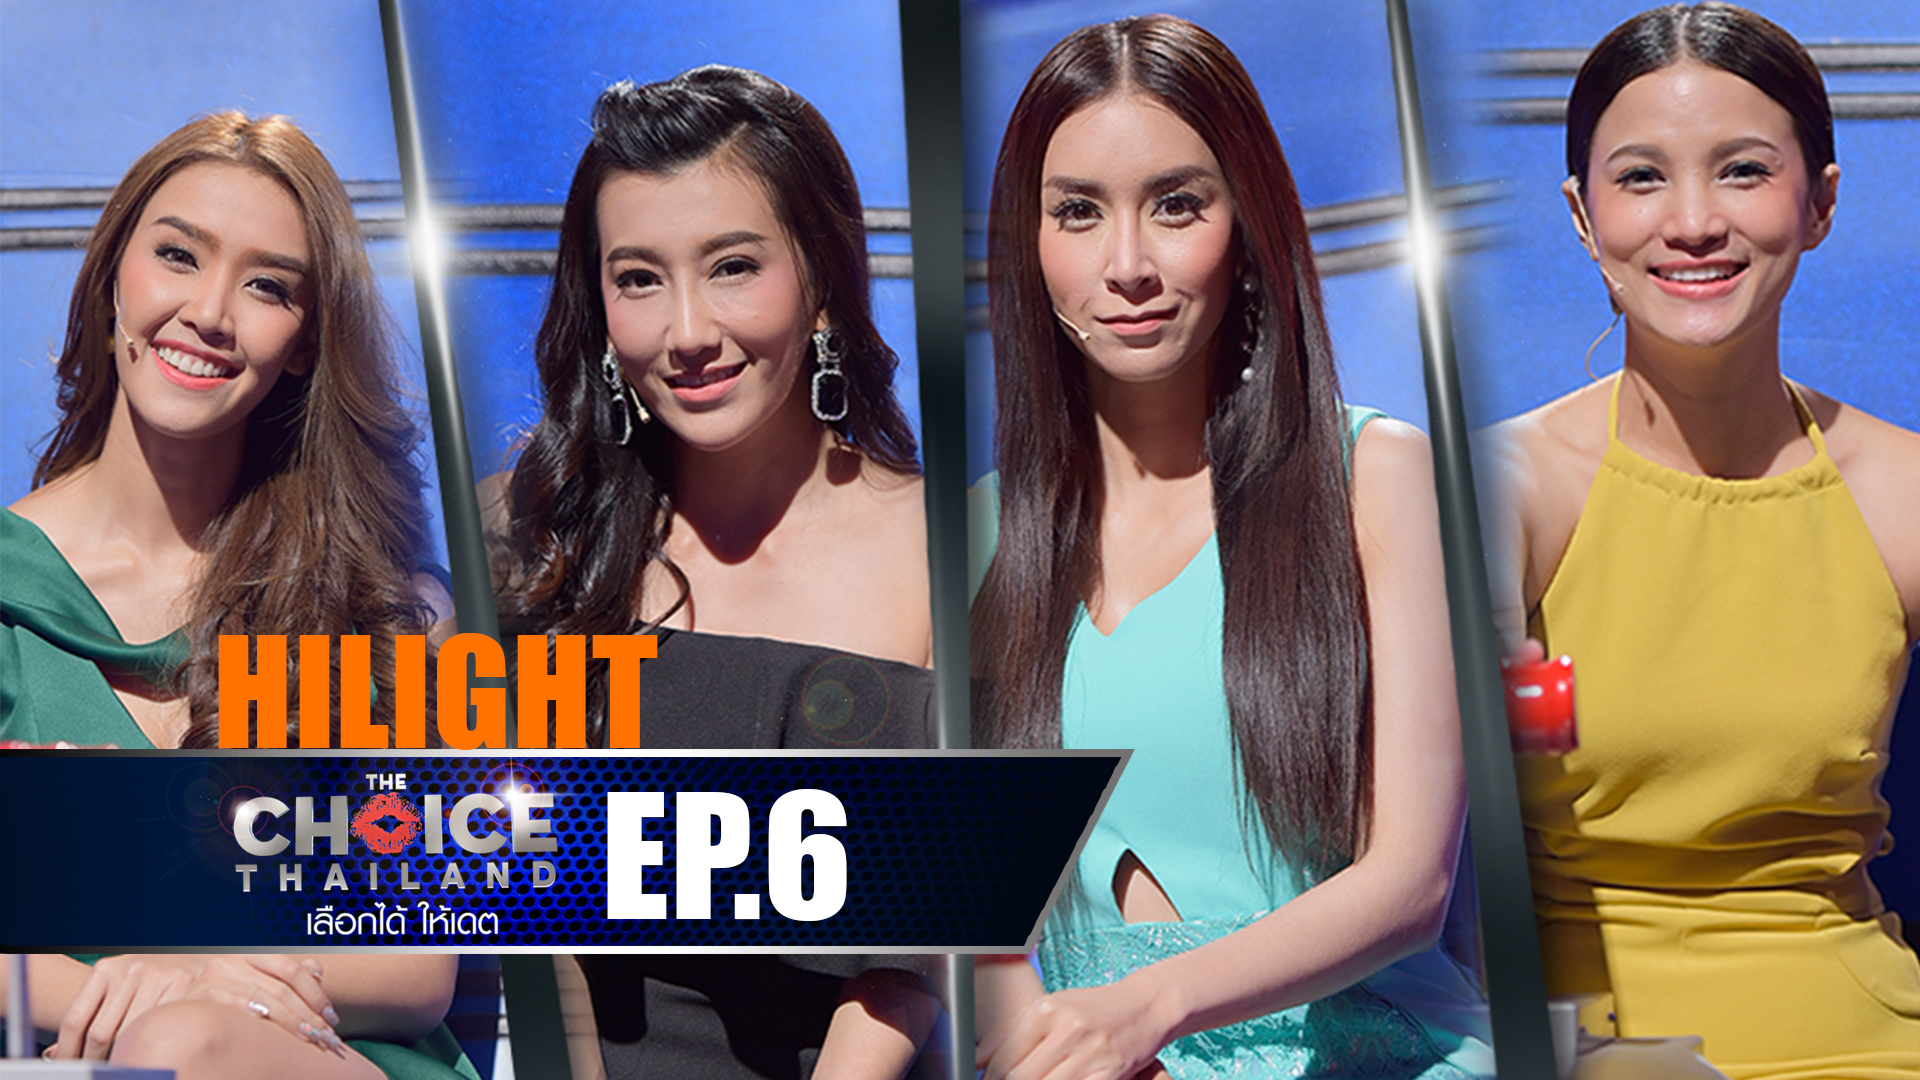 TheChoice_EP6